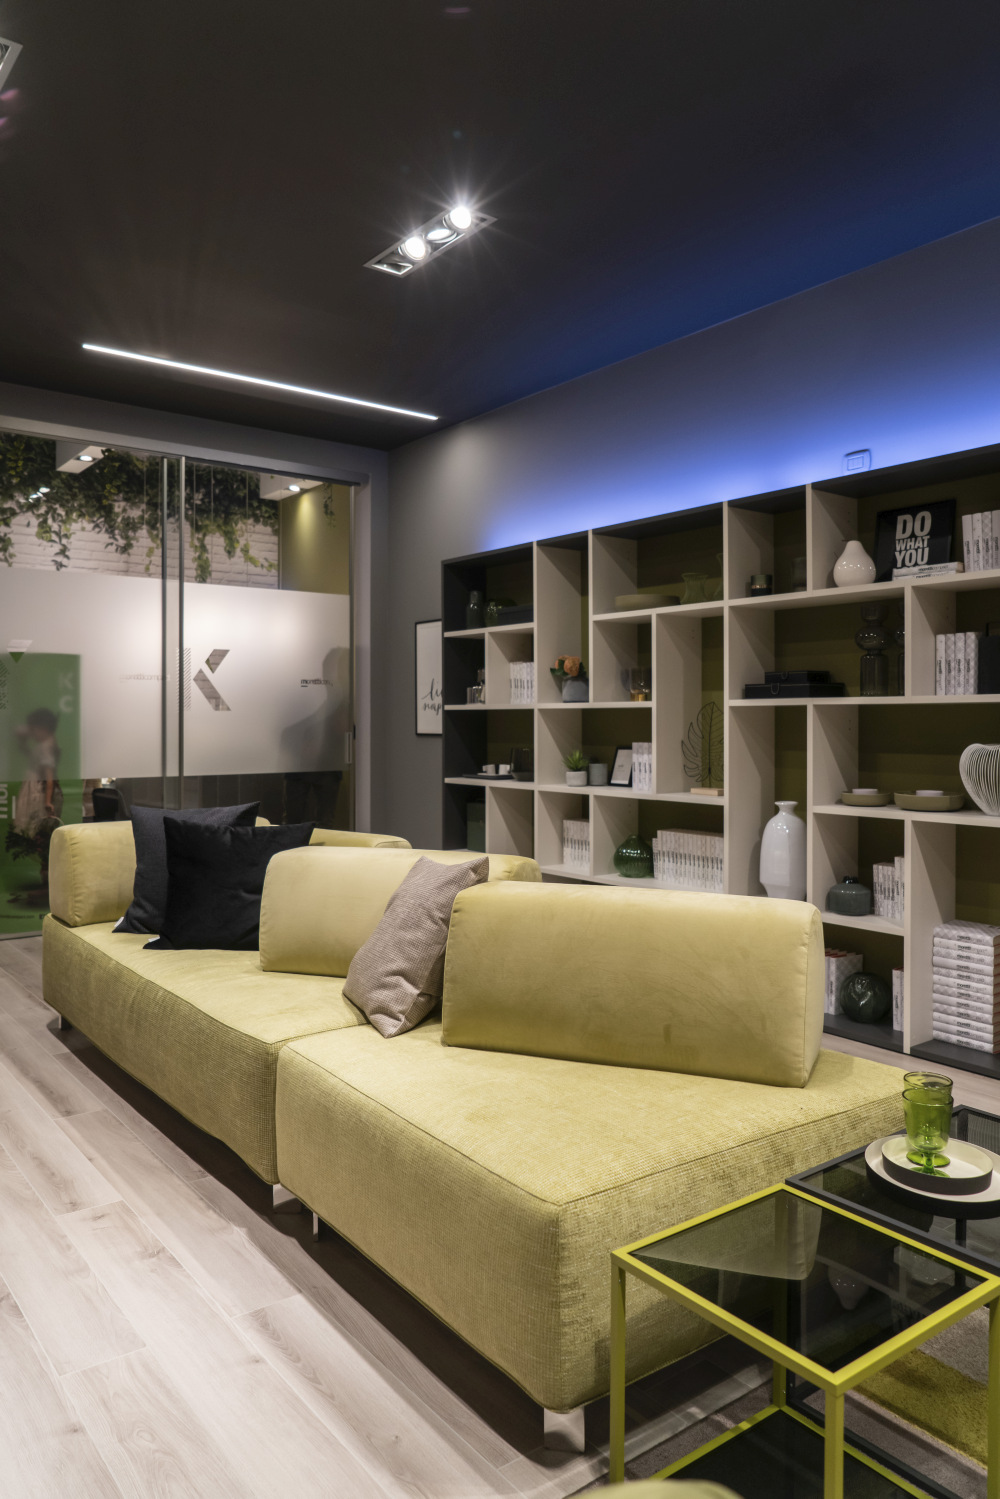 Green couch decor